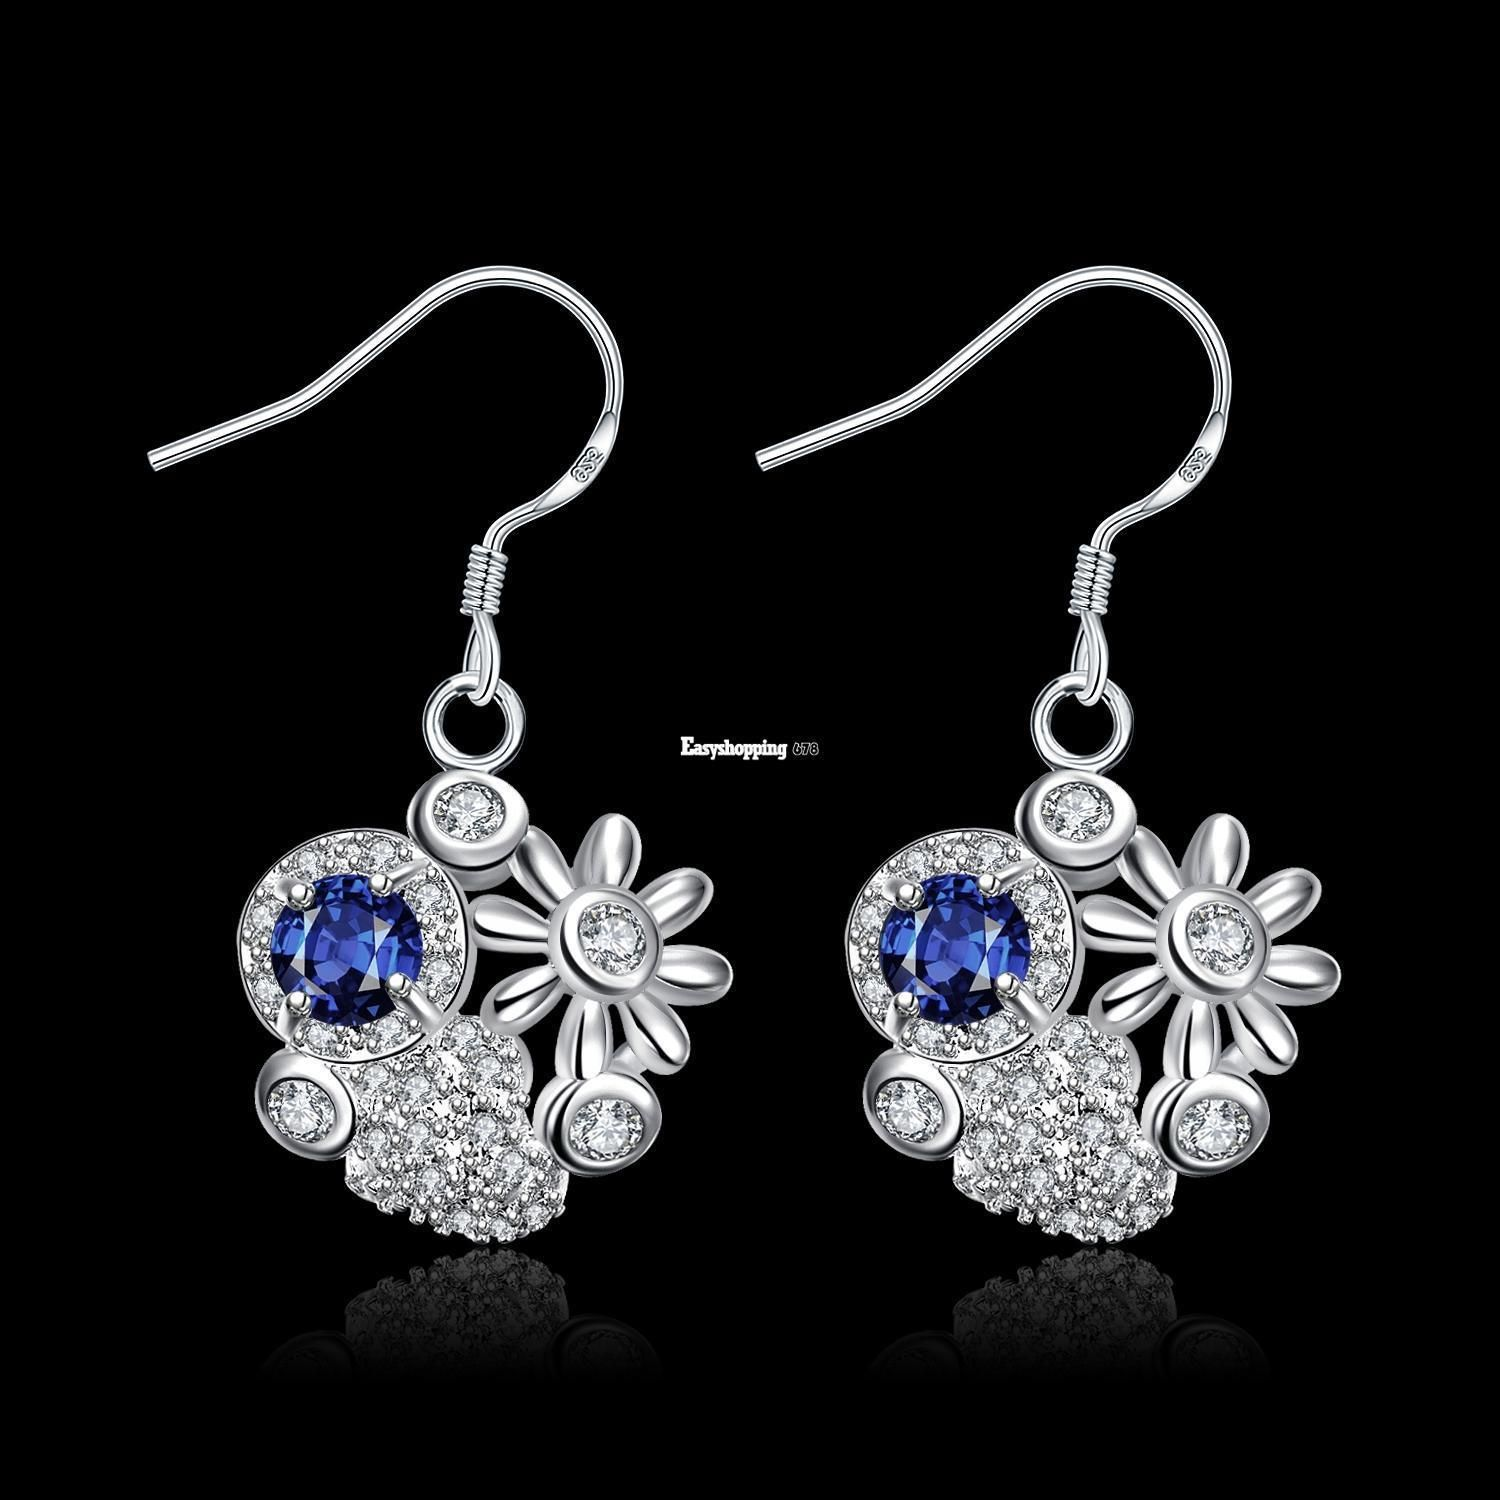 925 Silver Plated Earrings Ear Crystal Fashion Dangle Earring Gift For Women